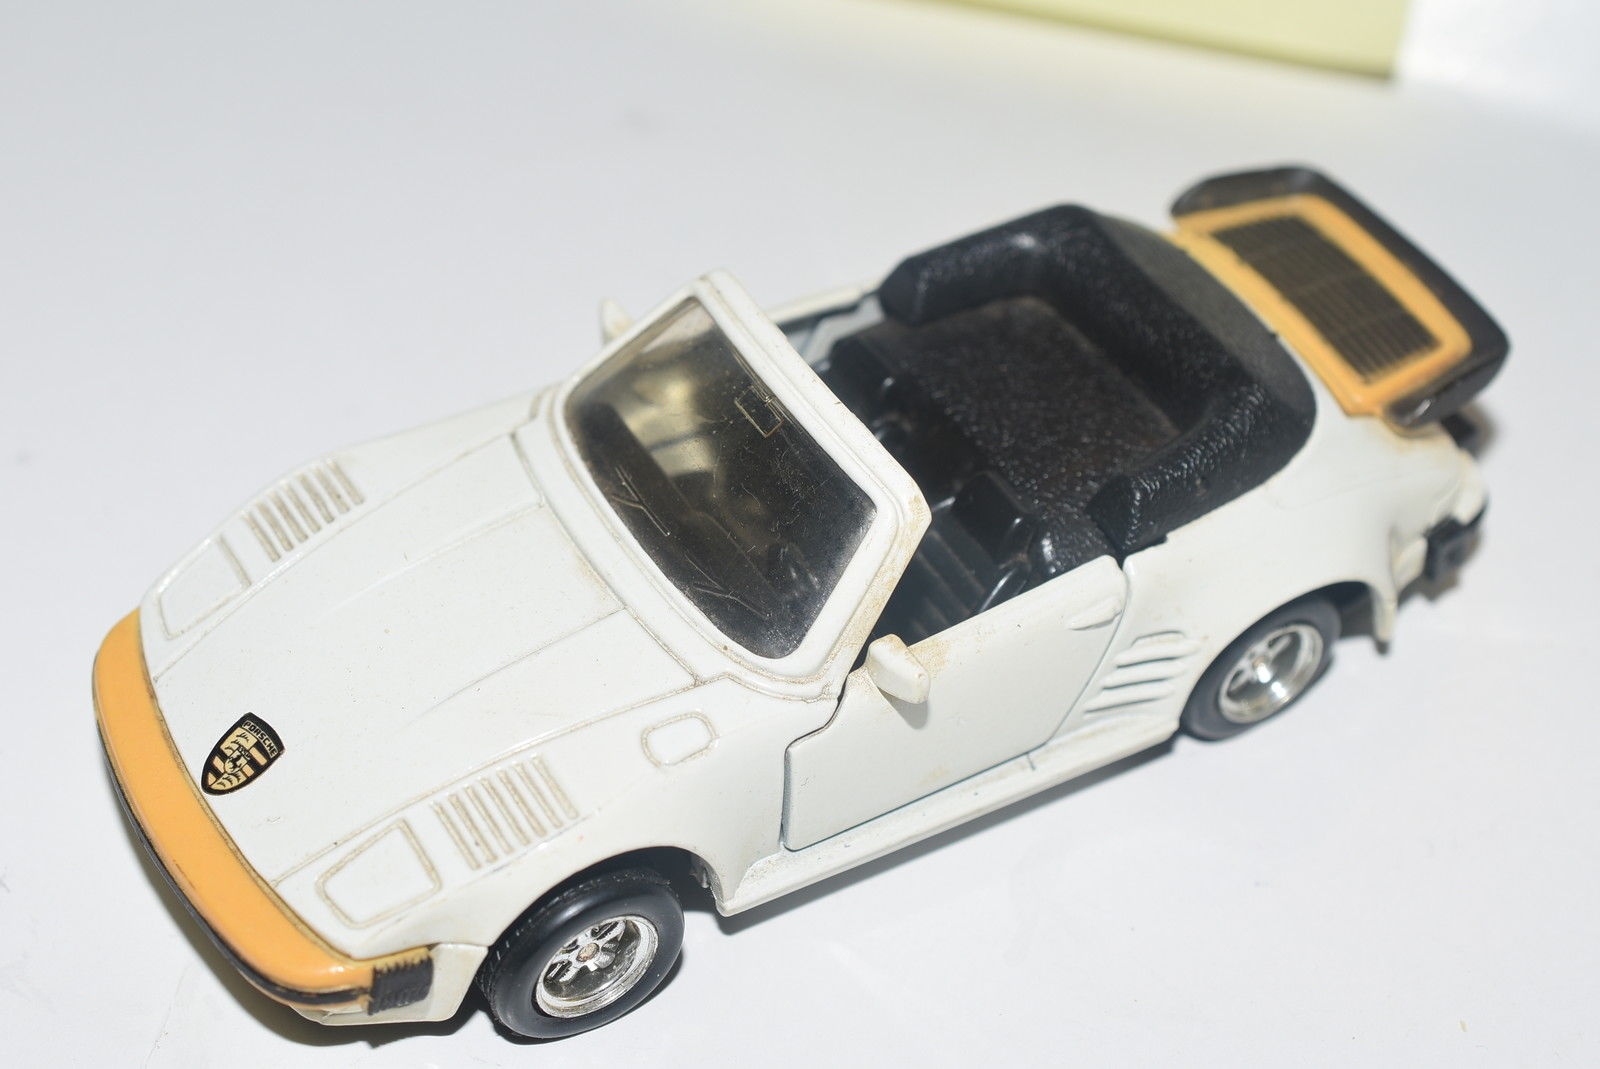 MC TOY PORSCHE 911 TURBO FLAT NOSE CABRIOLET SCALE 1/36 WHITE - LOOSE